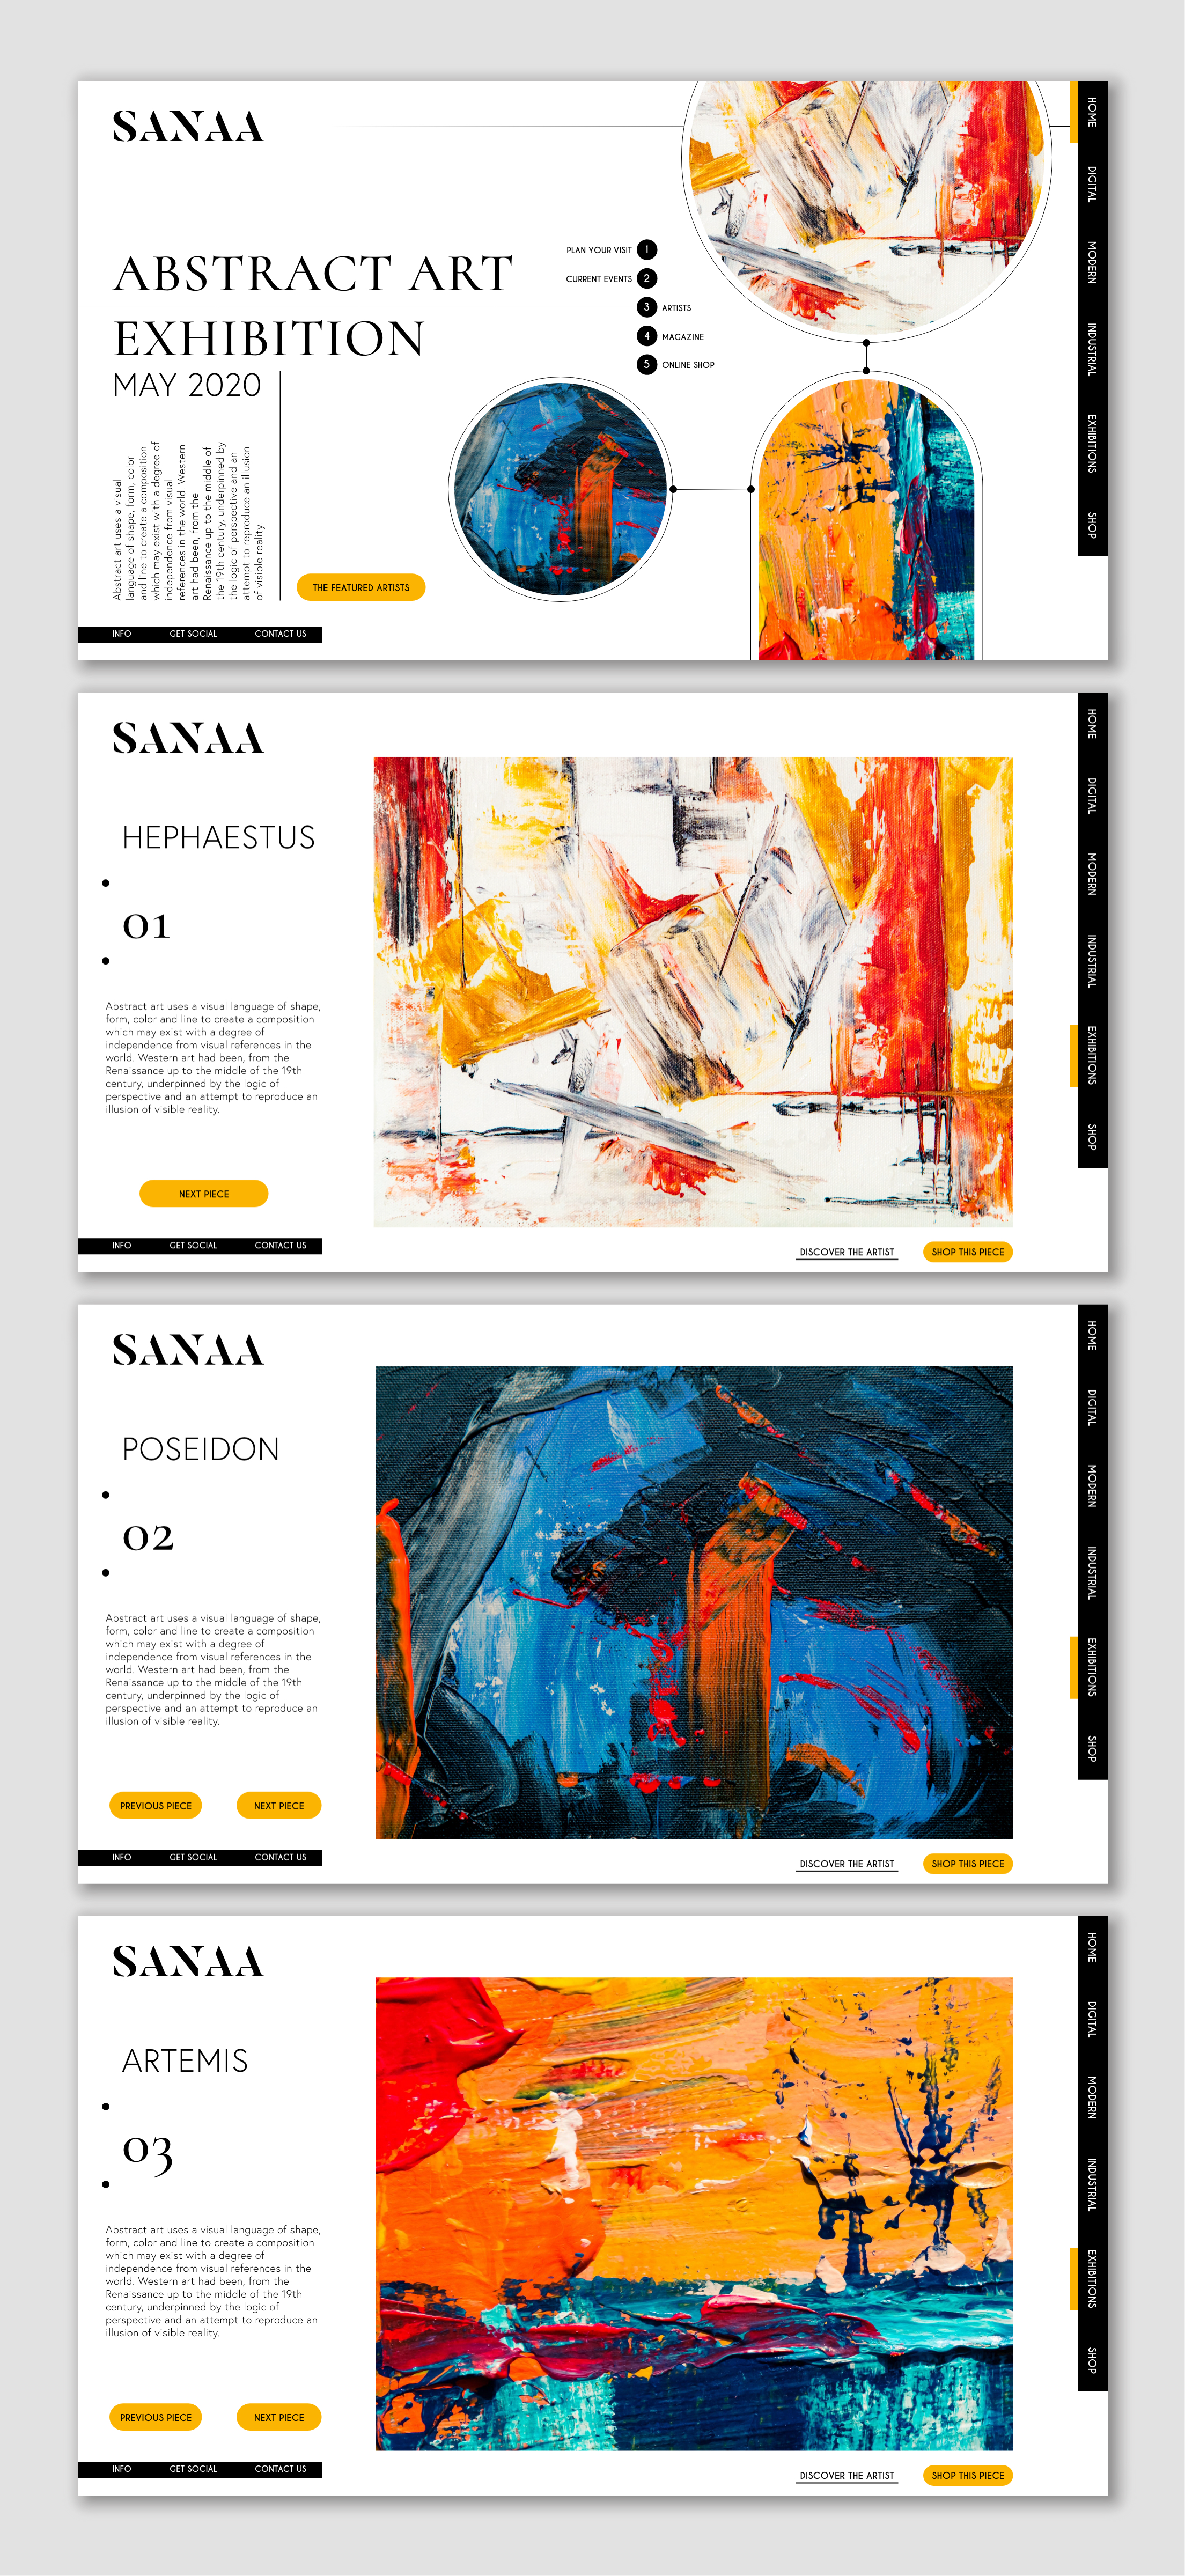 Sanaa website by maria wandiba.png